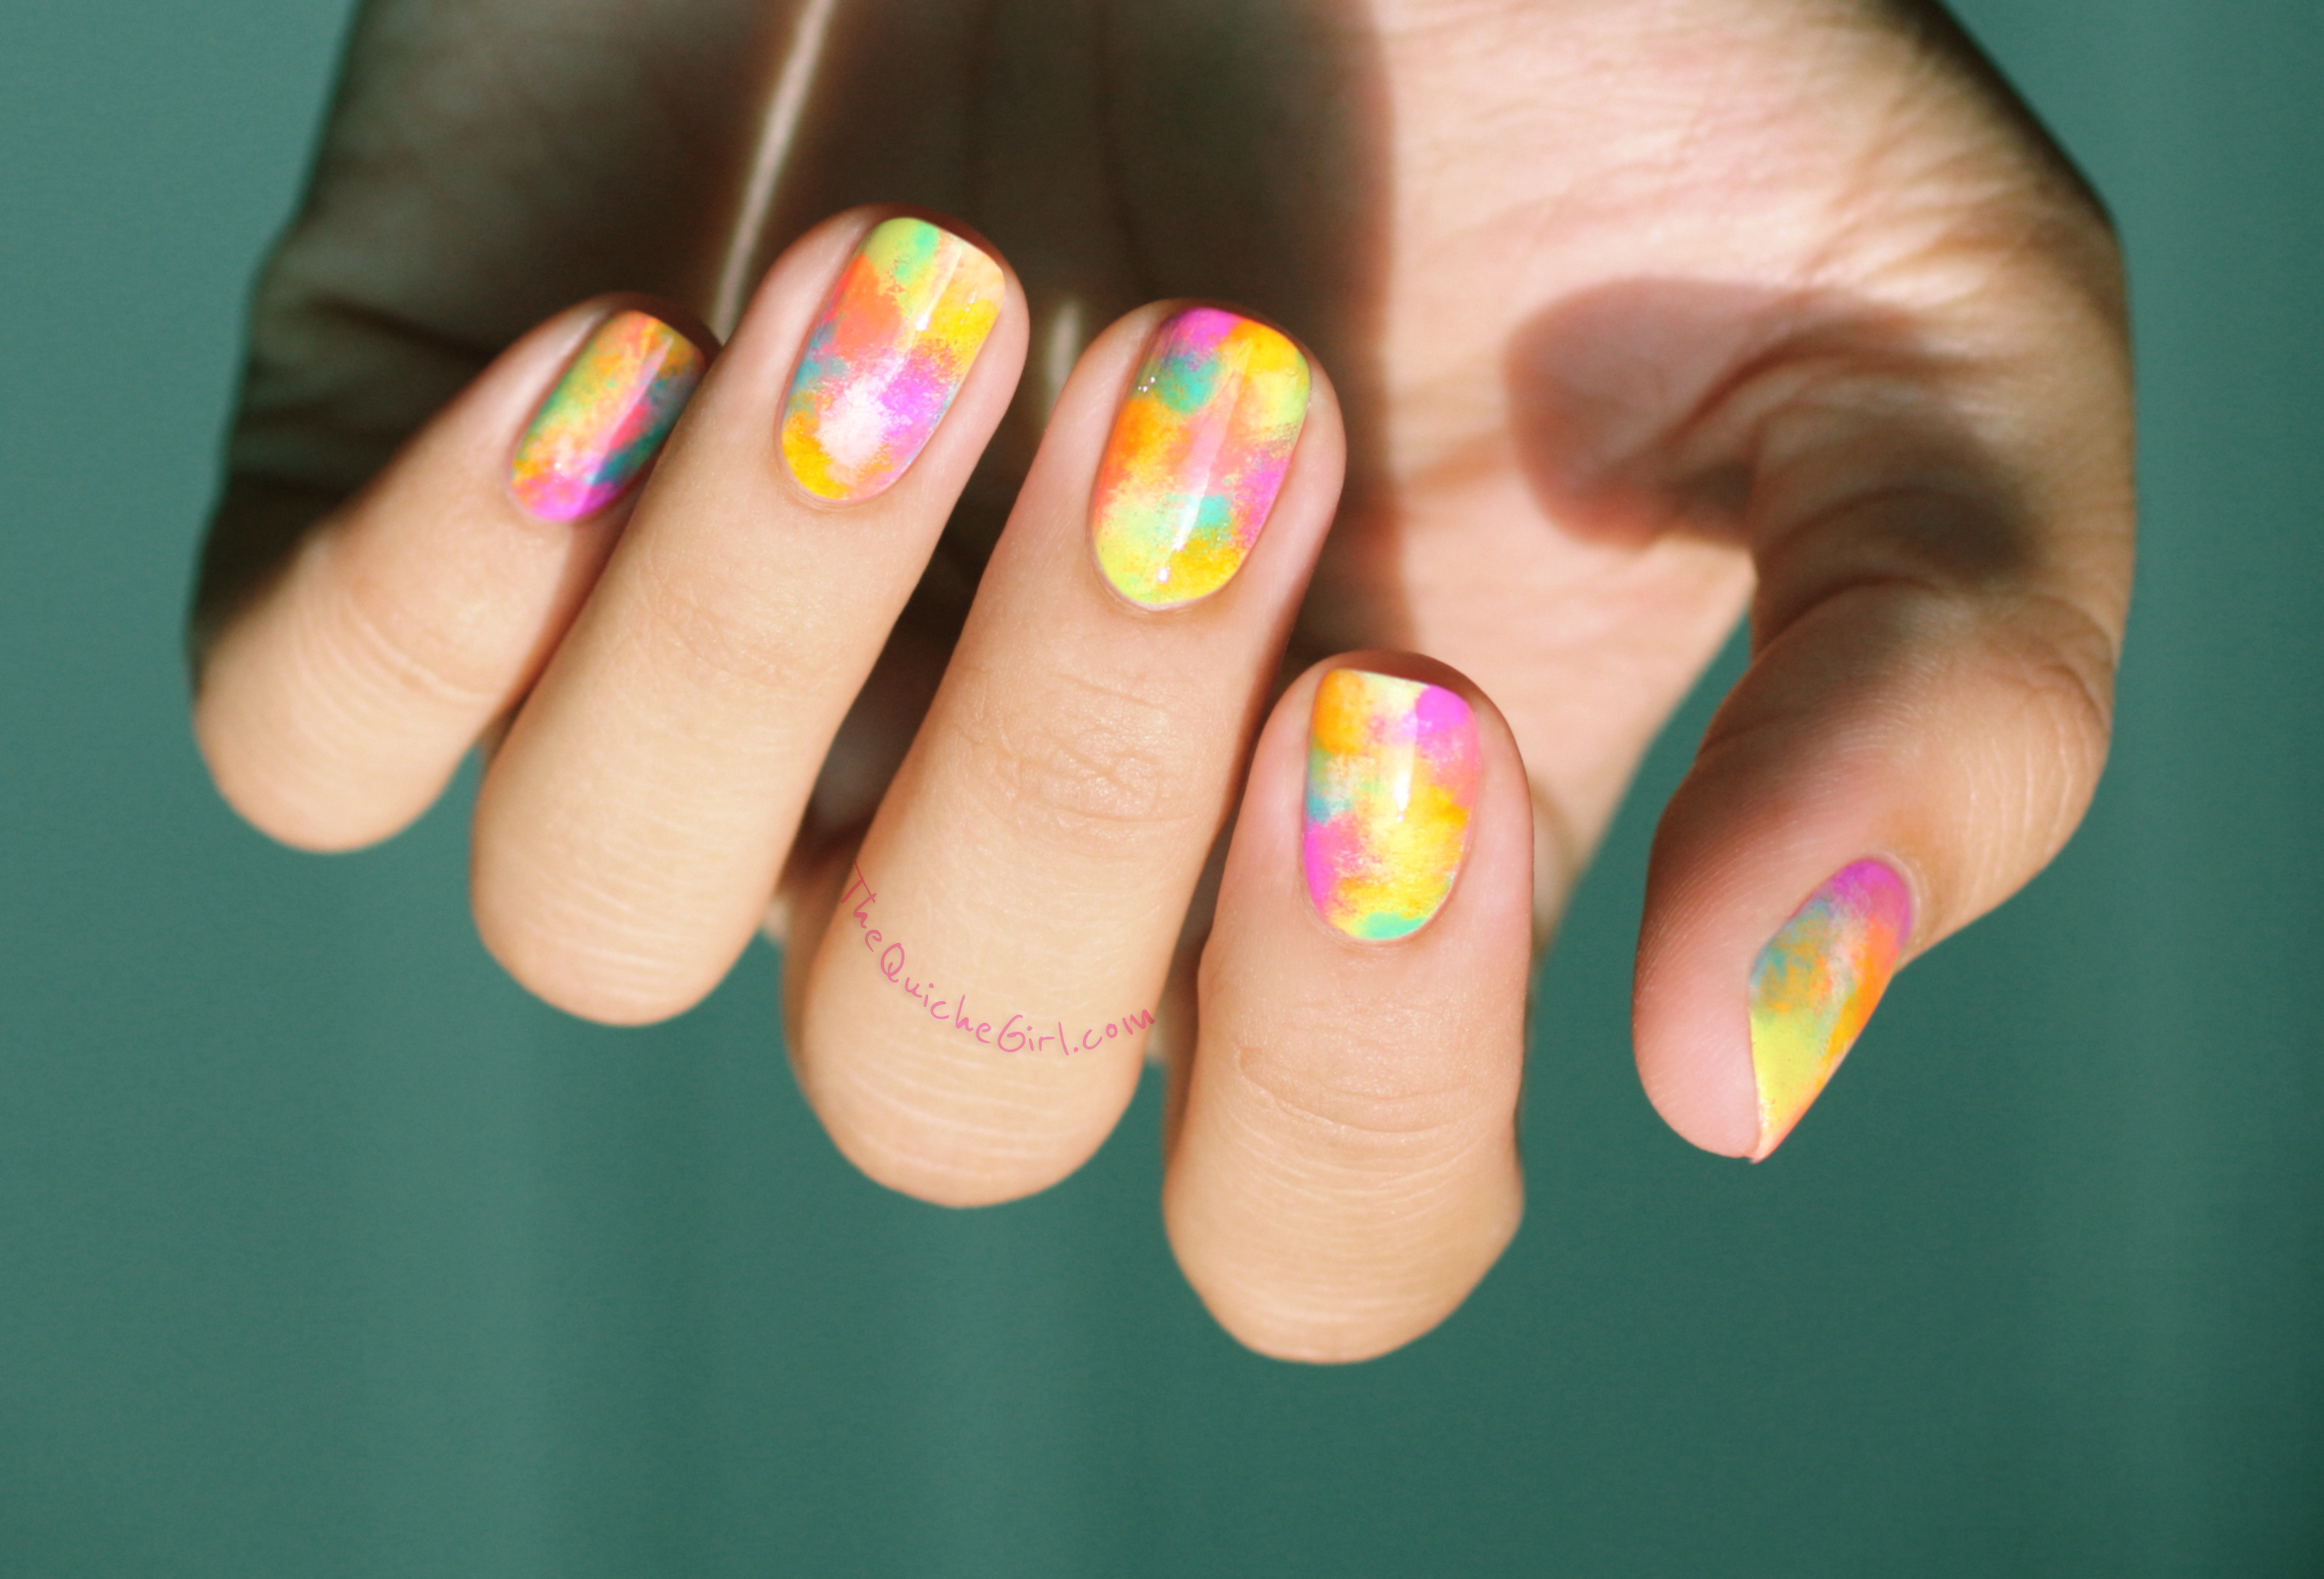 abstract, neon, eponge, OPI, China Glaze, QuicheGirl